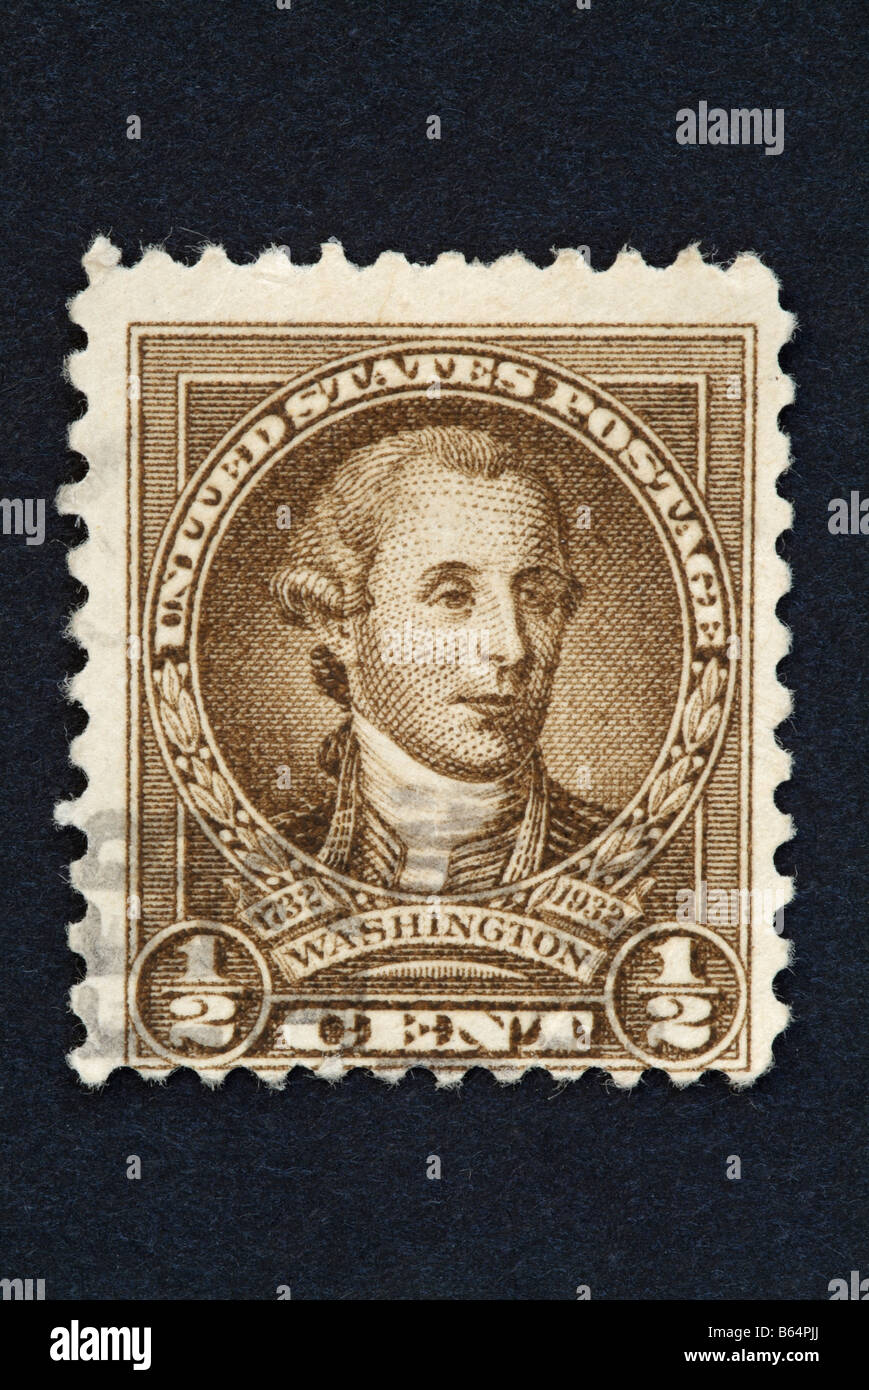 A Half Cent US Postage Stamp With The Image Of George Washington